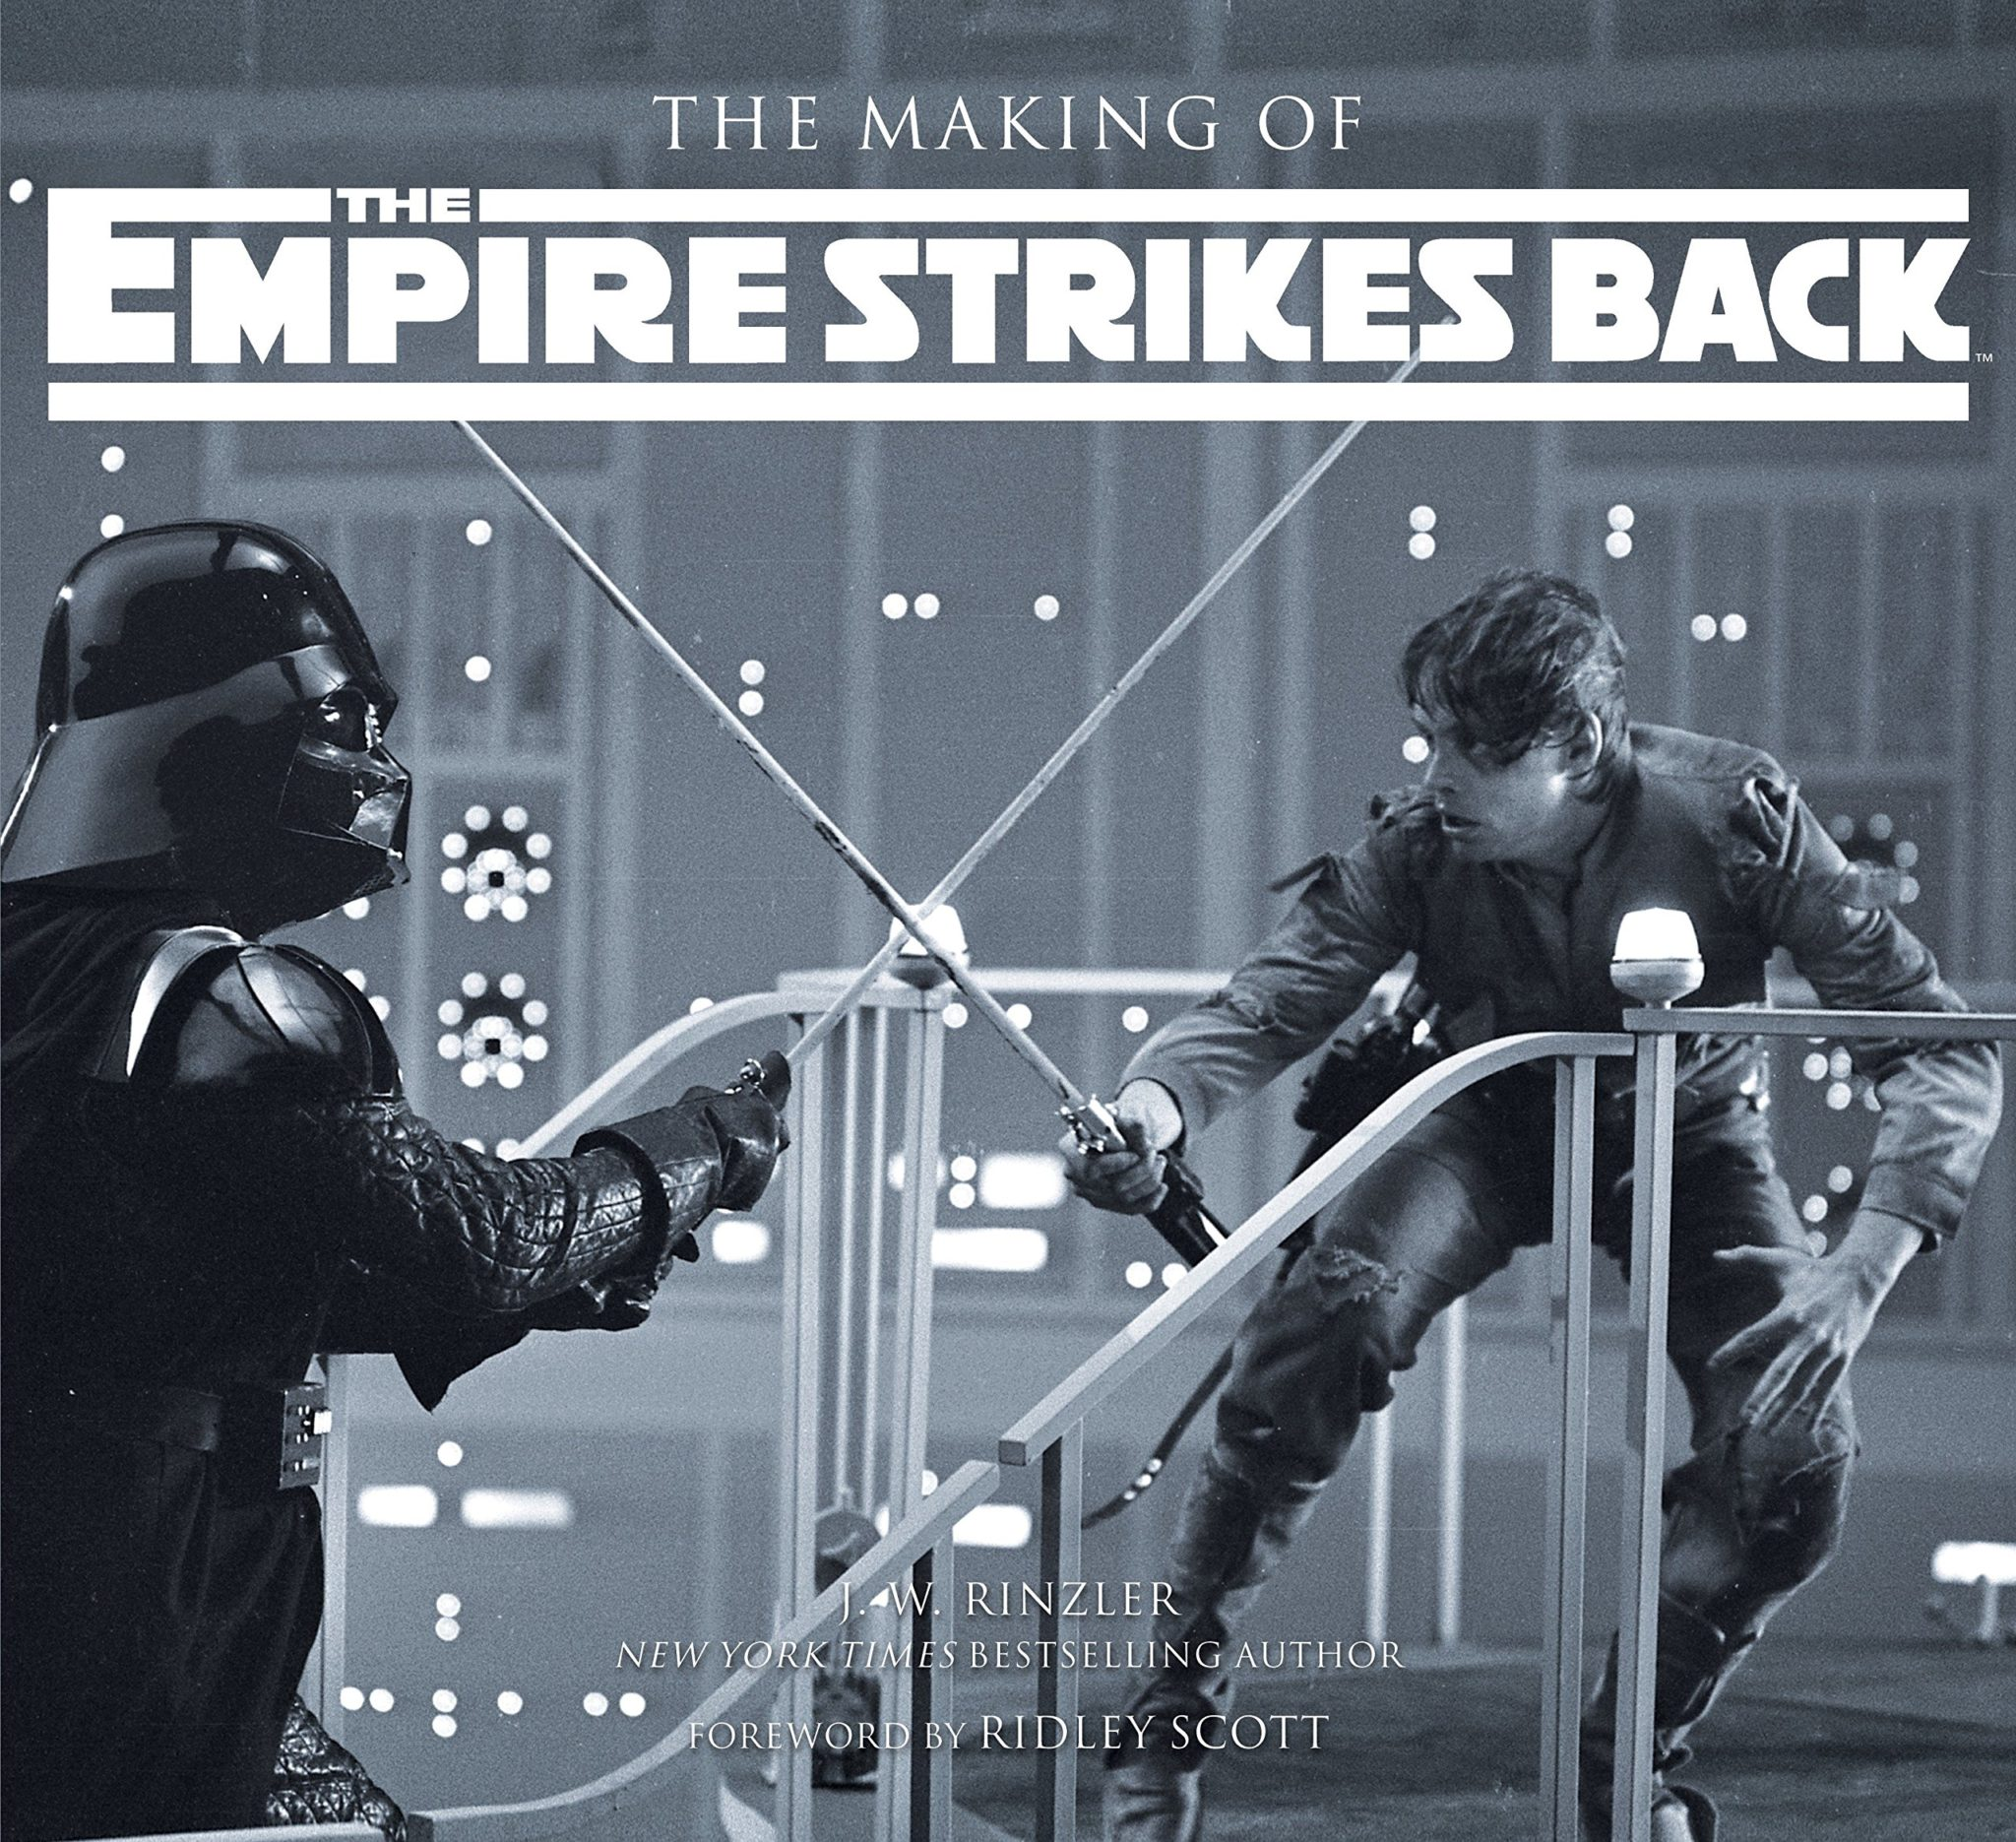 The Making of The Empire Strikes Back - The Essential STAR WARS in 5 1/2 Books